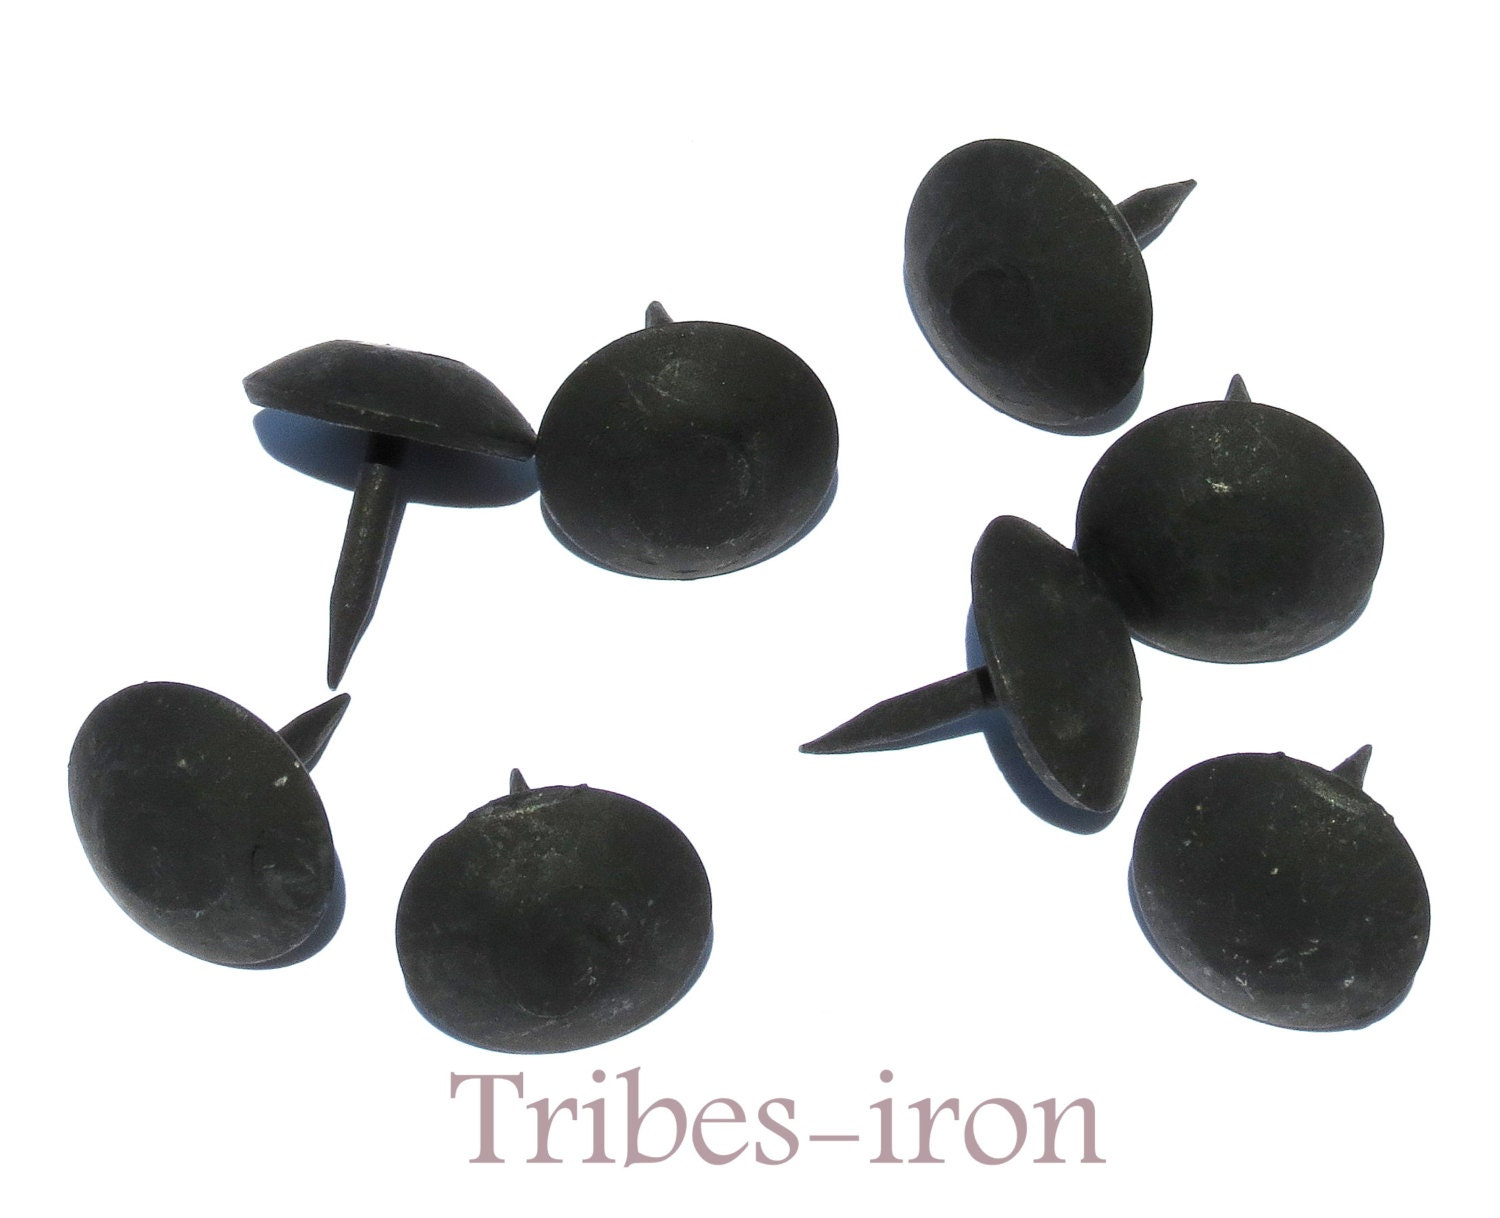 Decorative Nail Heads Lot Of 40 Black Nails Round 1 Head Decorative Clavos Wrought Iron